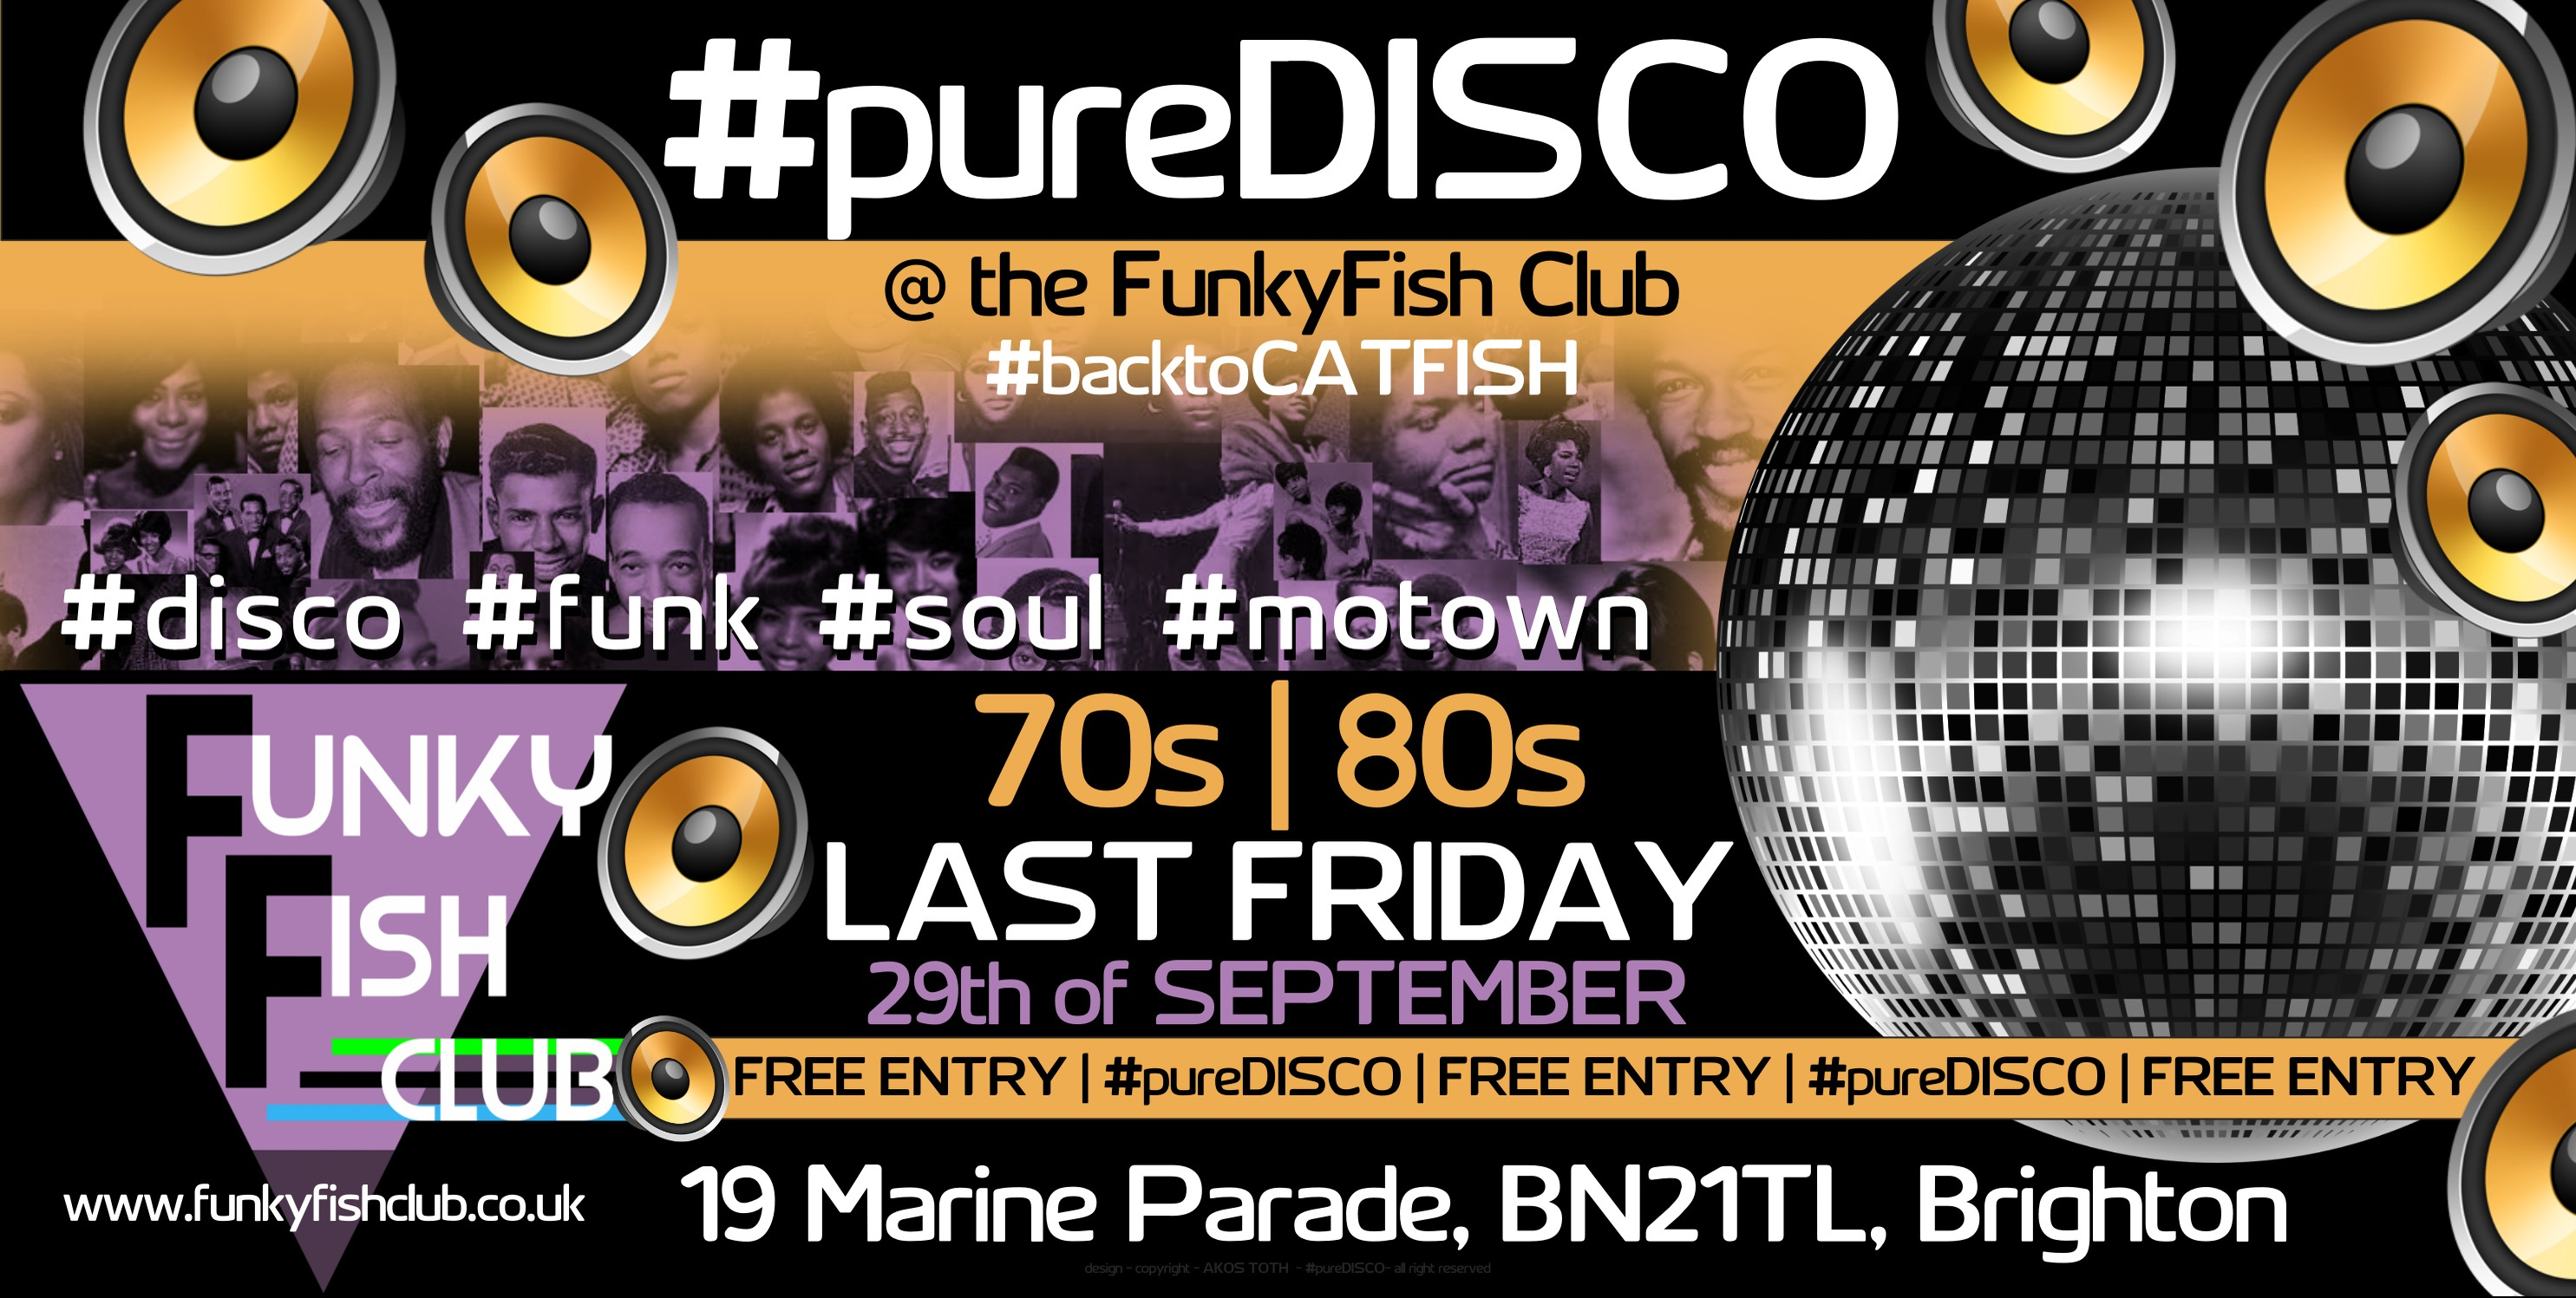 FRIDAY 27th OCTOBER - PURE DISCO - FREE ENTRTY